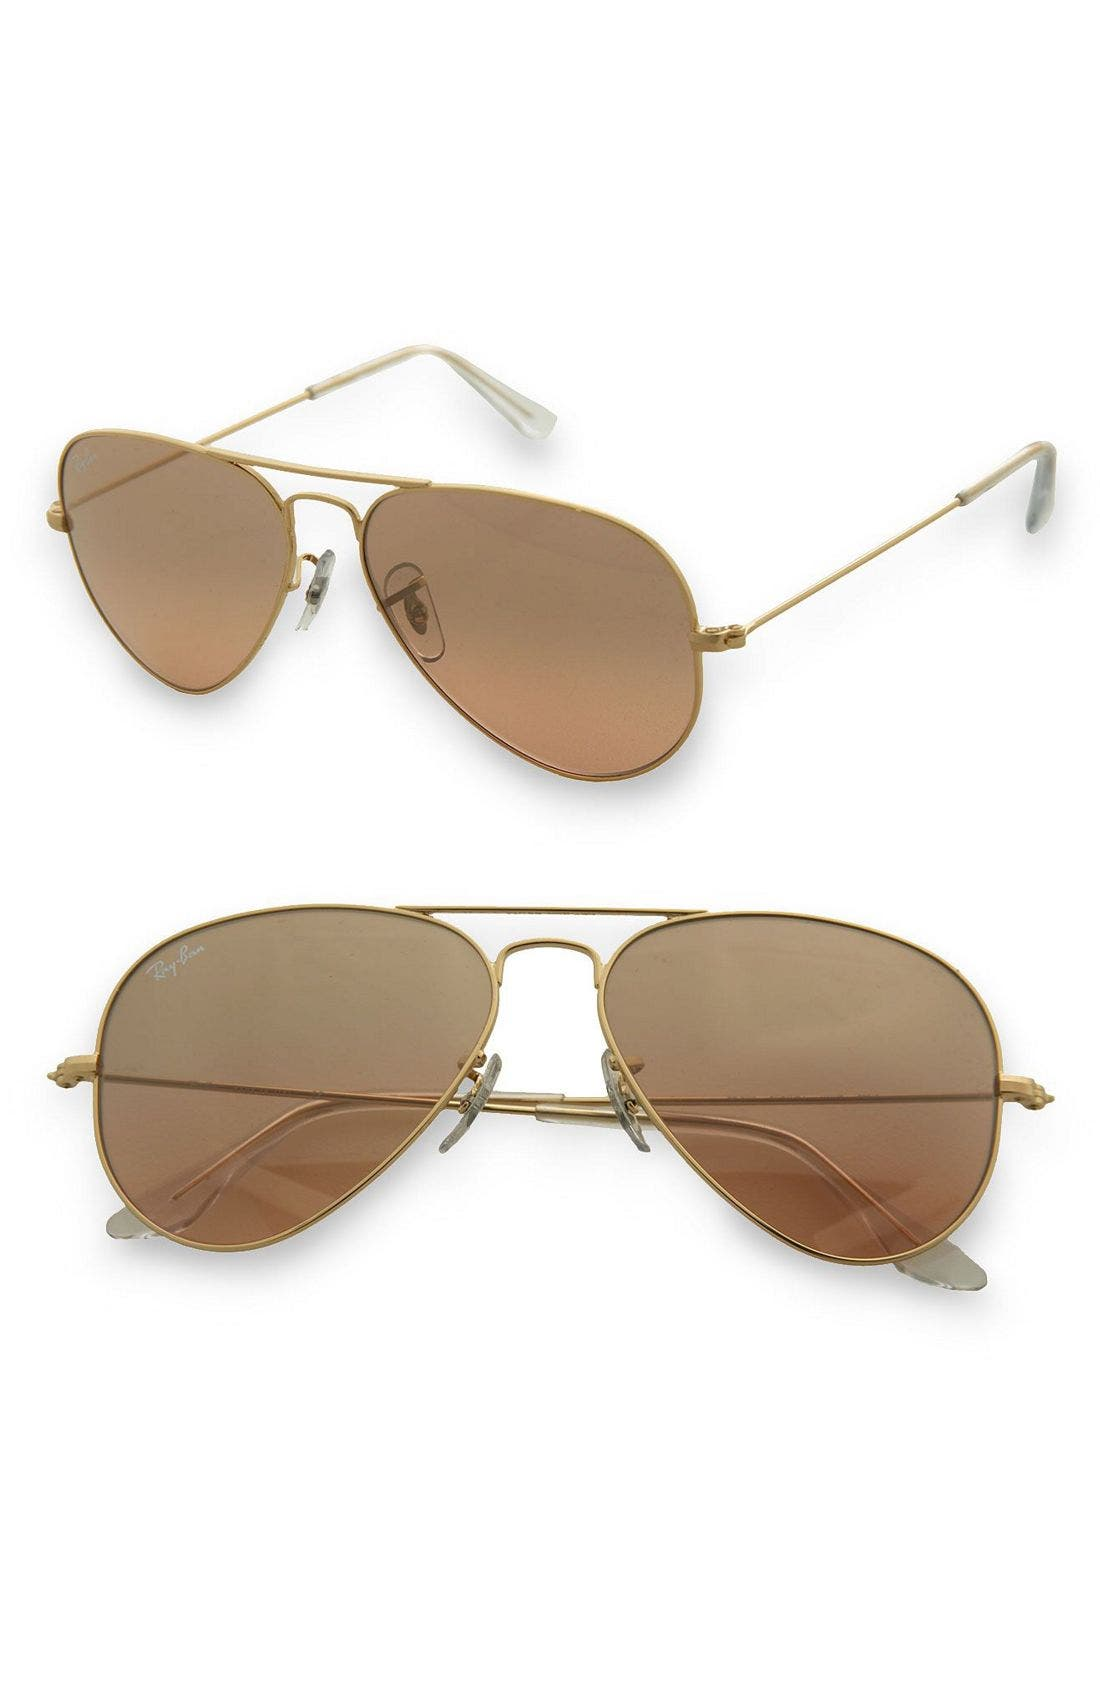 Main Image - Ray-Ban 'Original Aviator' 58mm Sunglasses